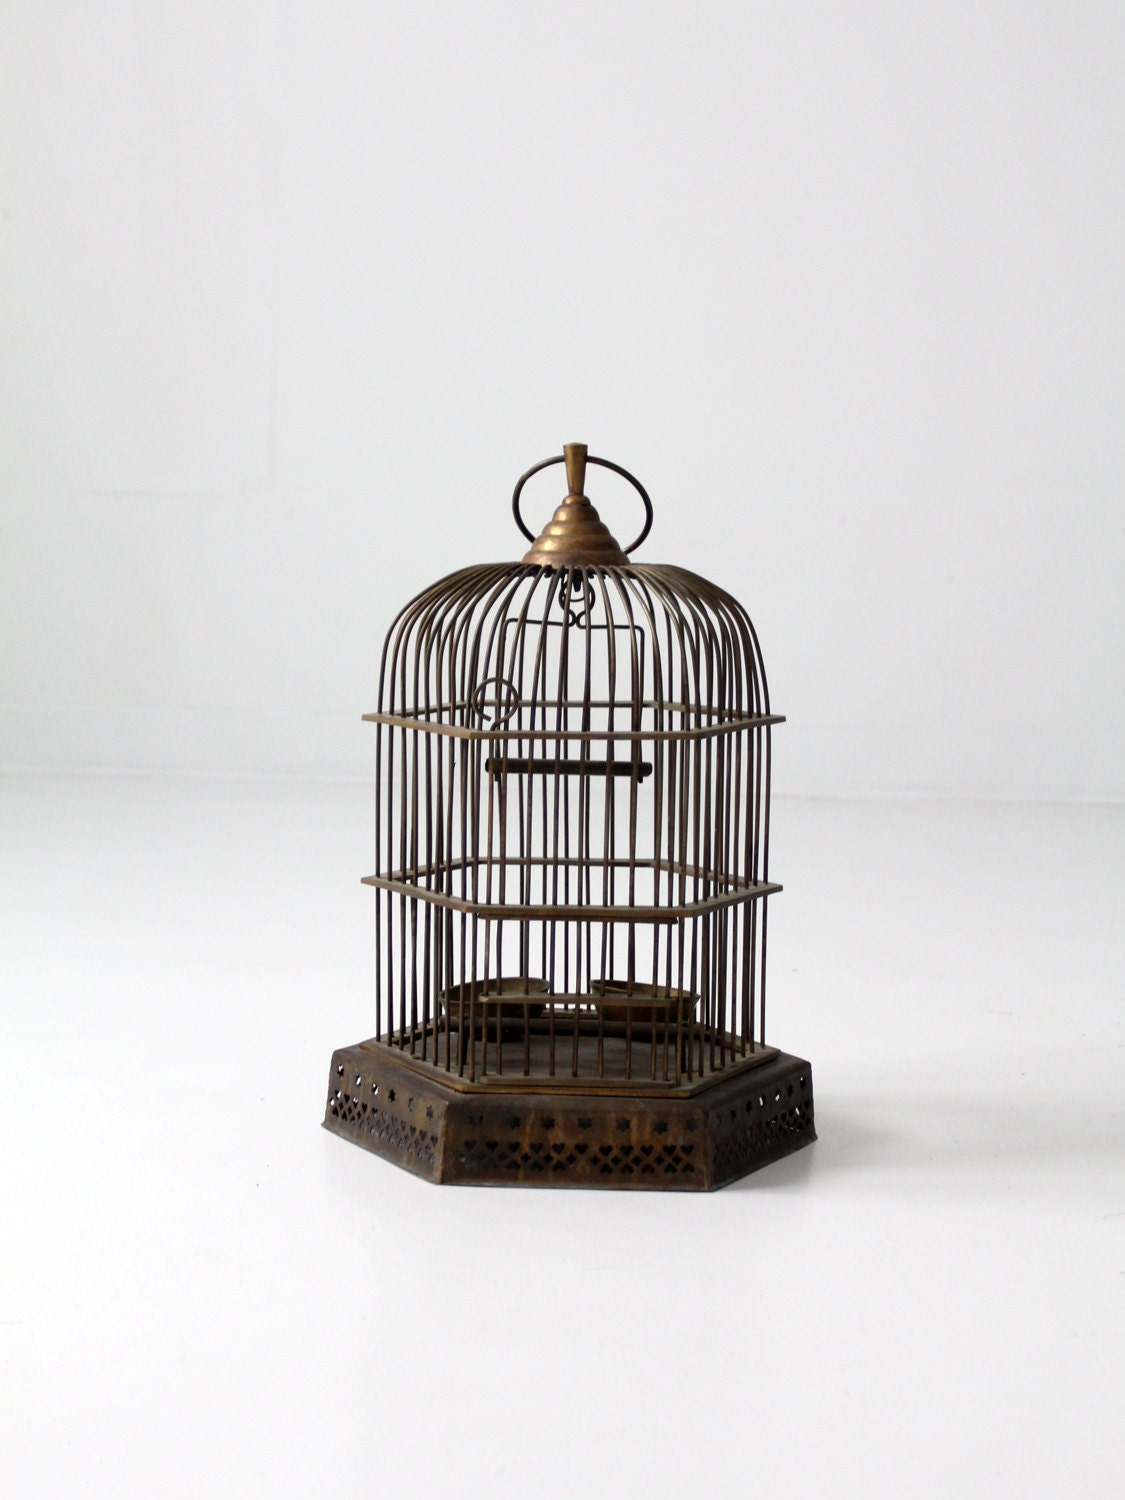 antique brass birdcage decorative bird cage. Black Bedroom Furniture Sets. Home Design Ideas